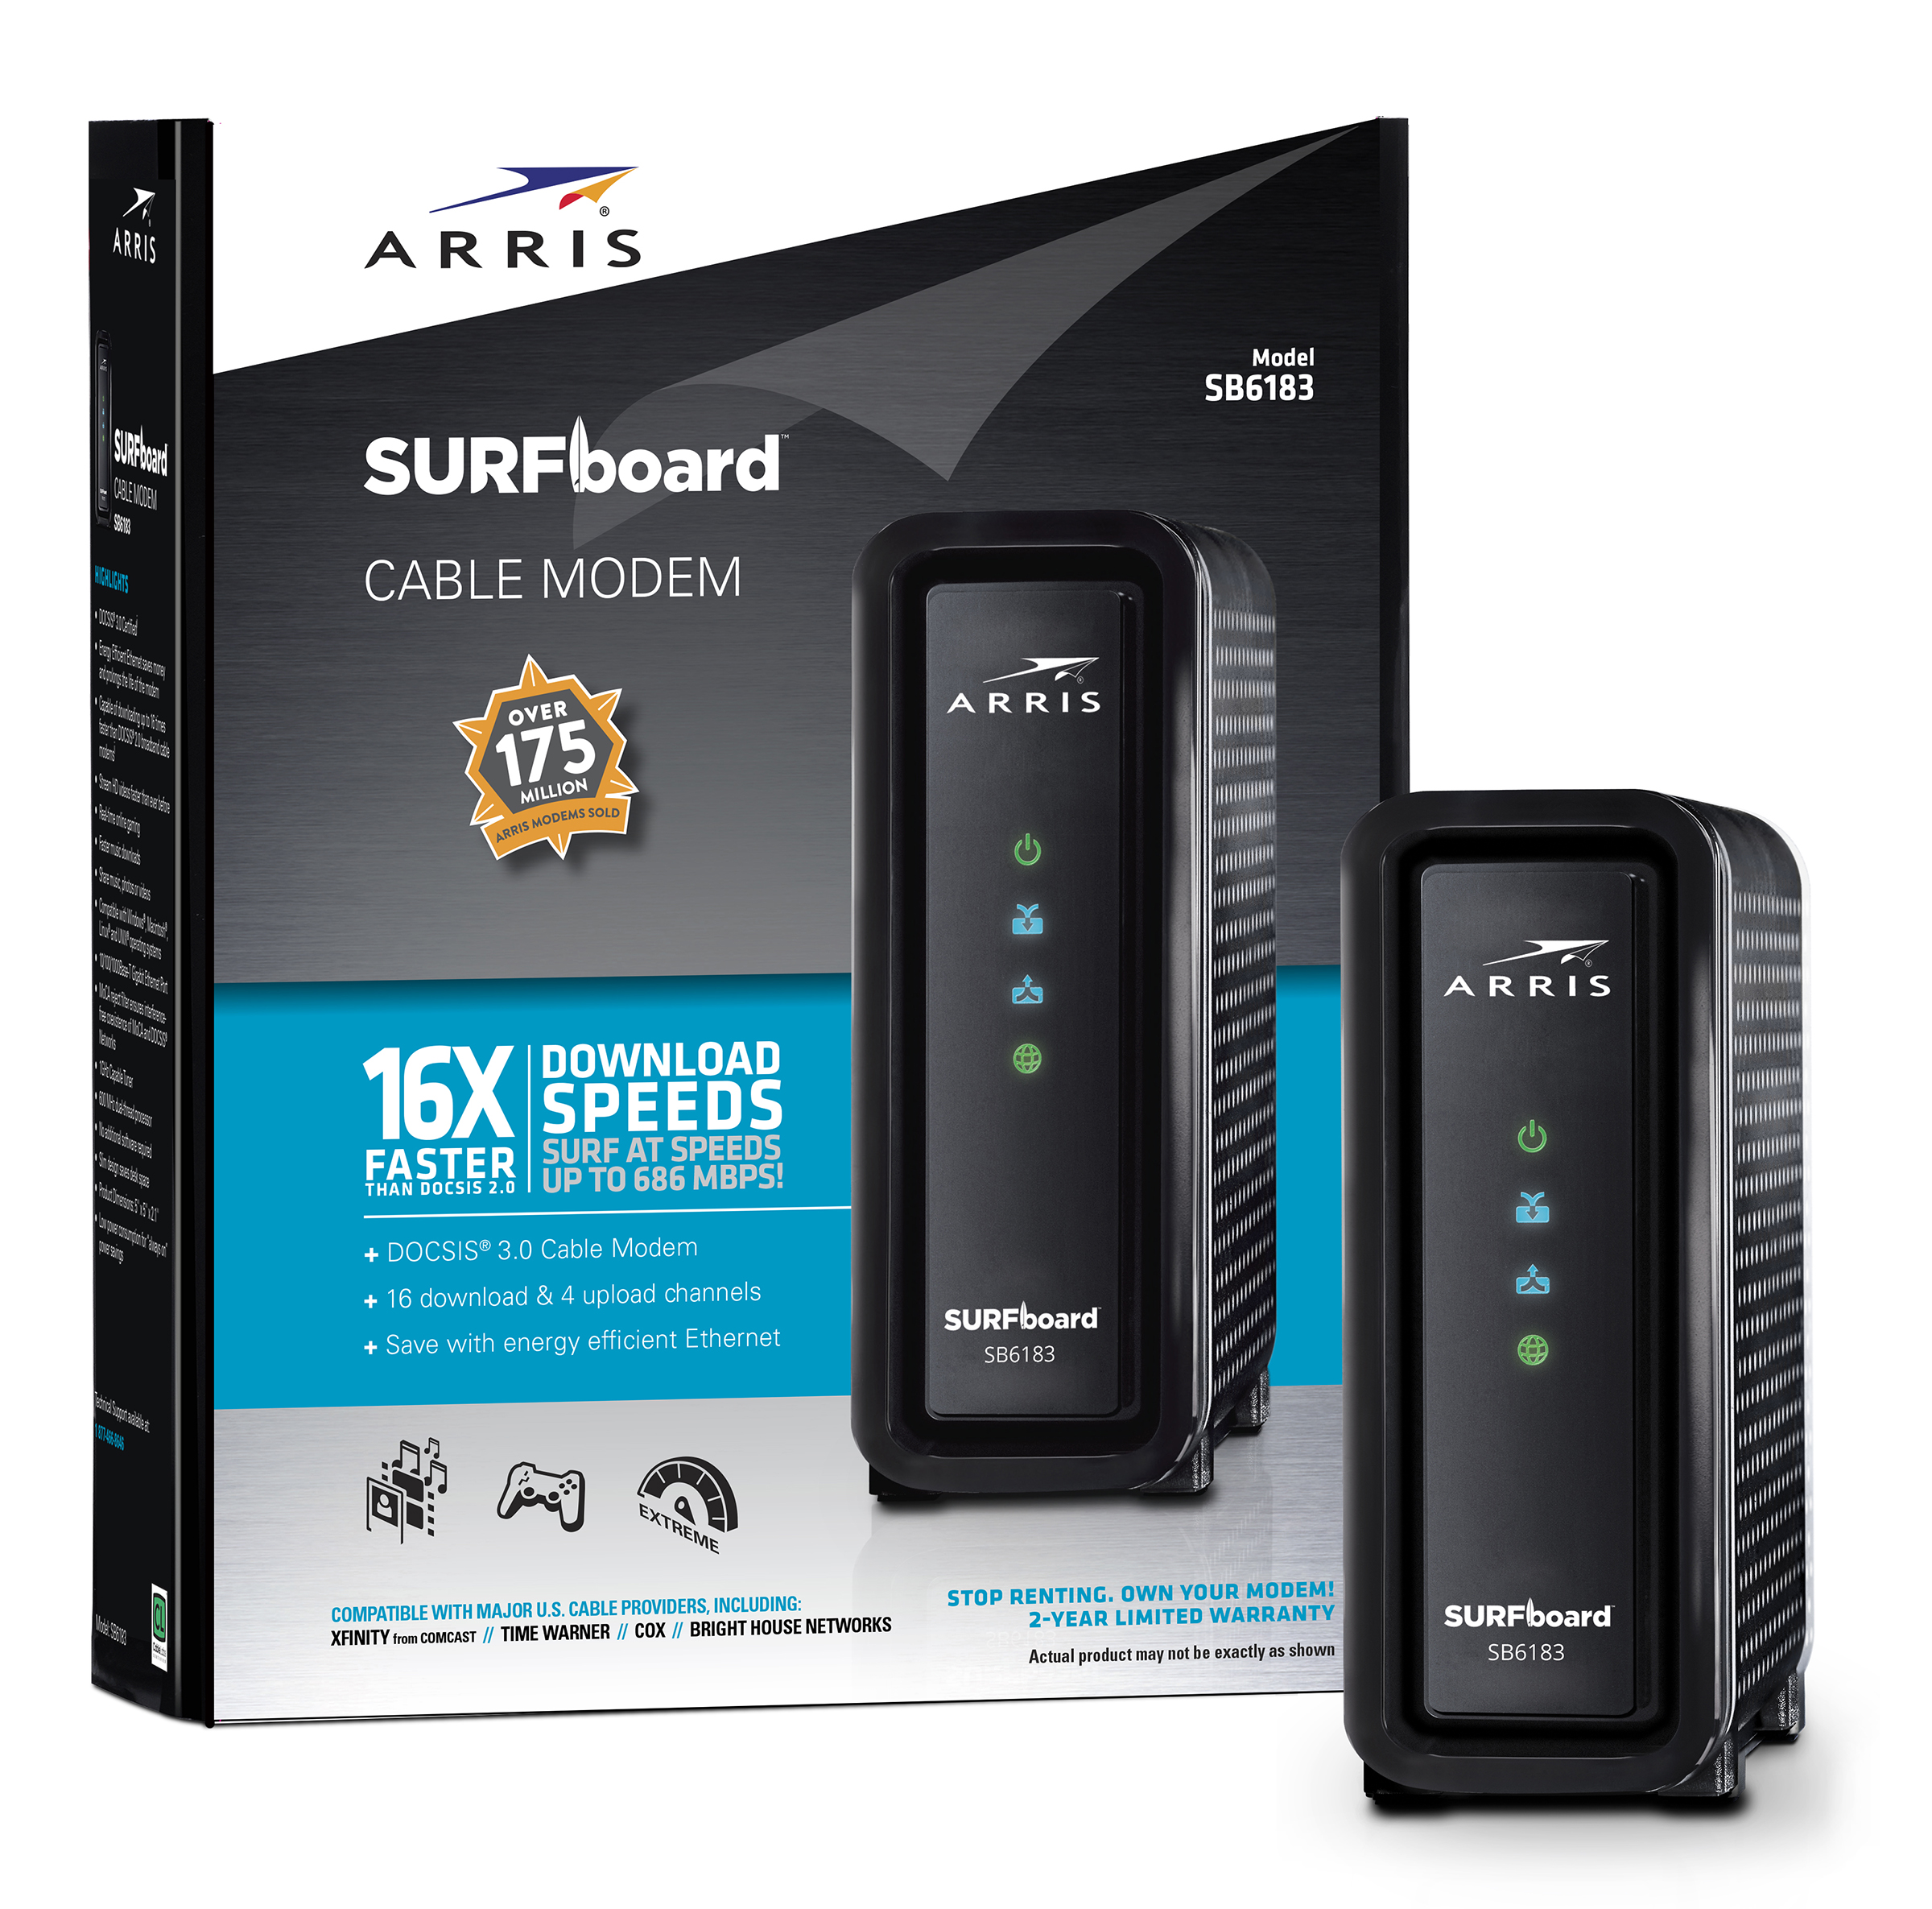 ARRIS SURFboard SB6183 DOCSIS 3.0 Cable Modem - colors may vary